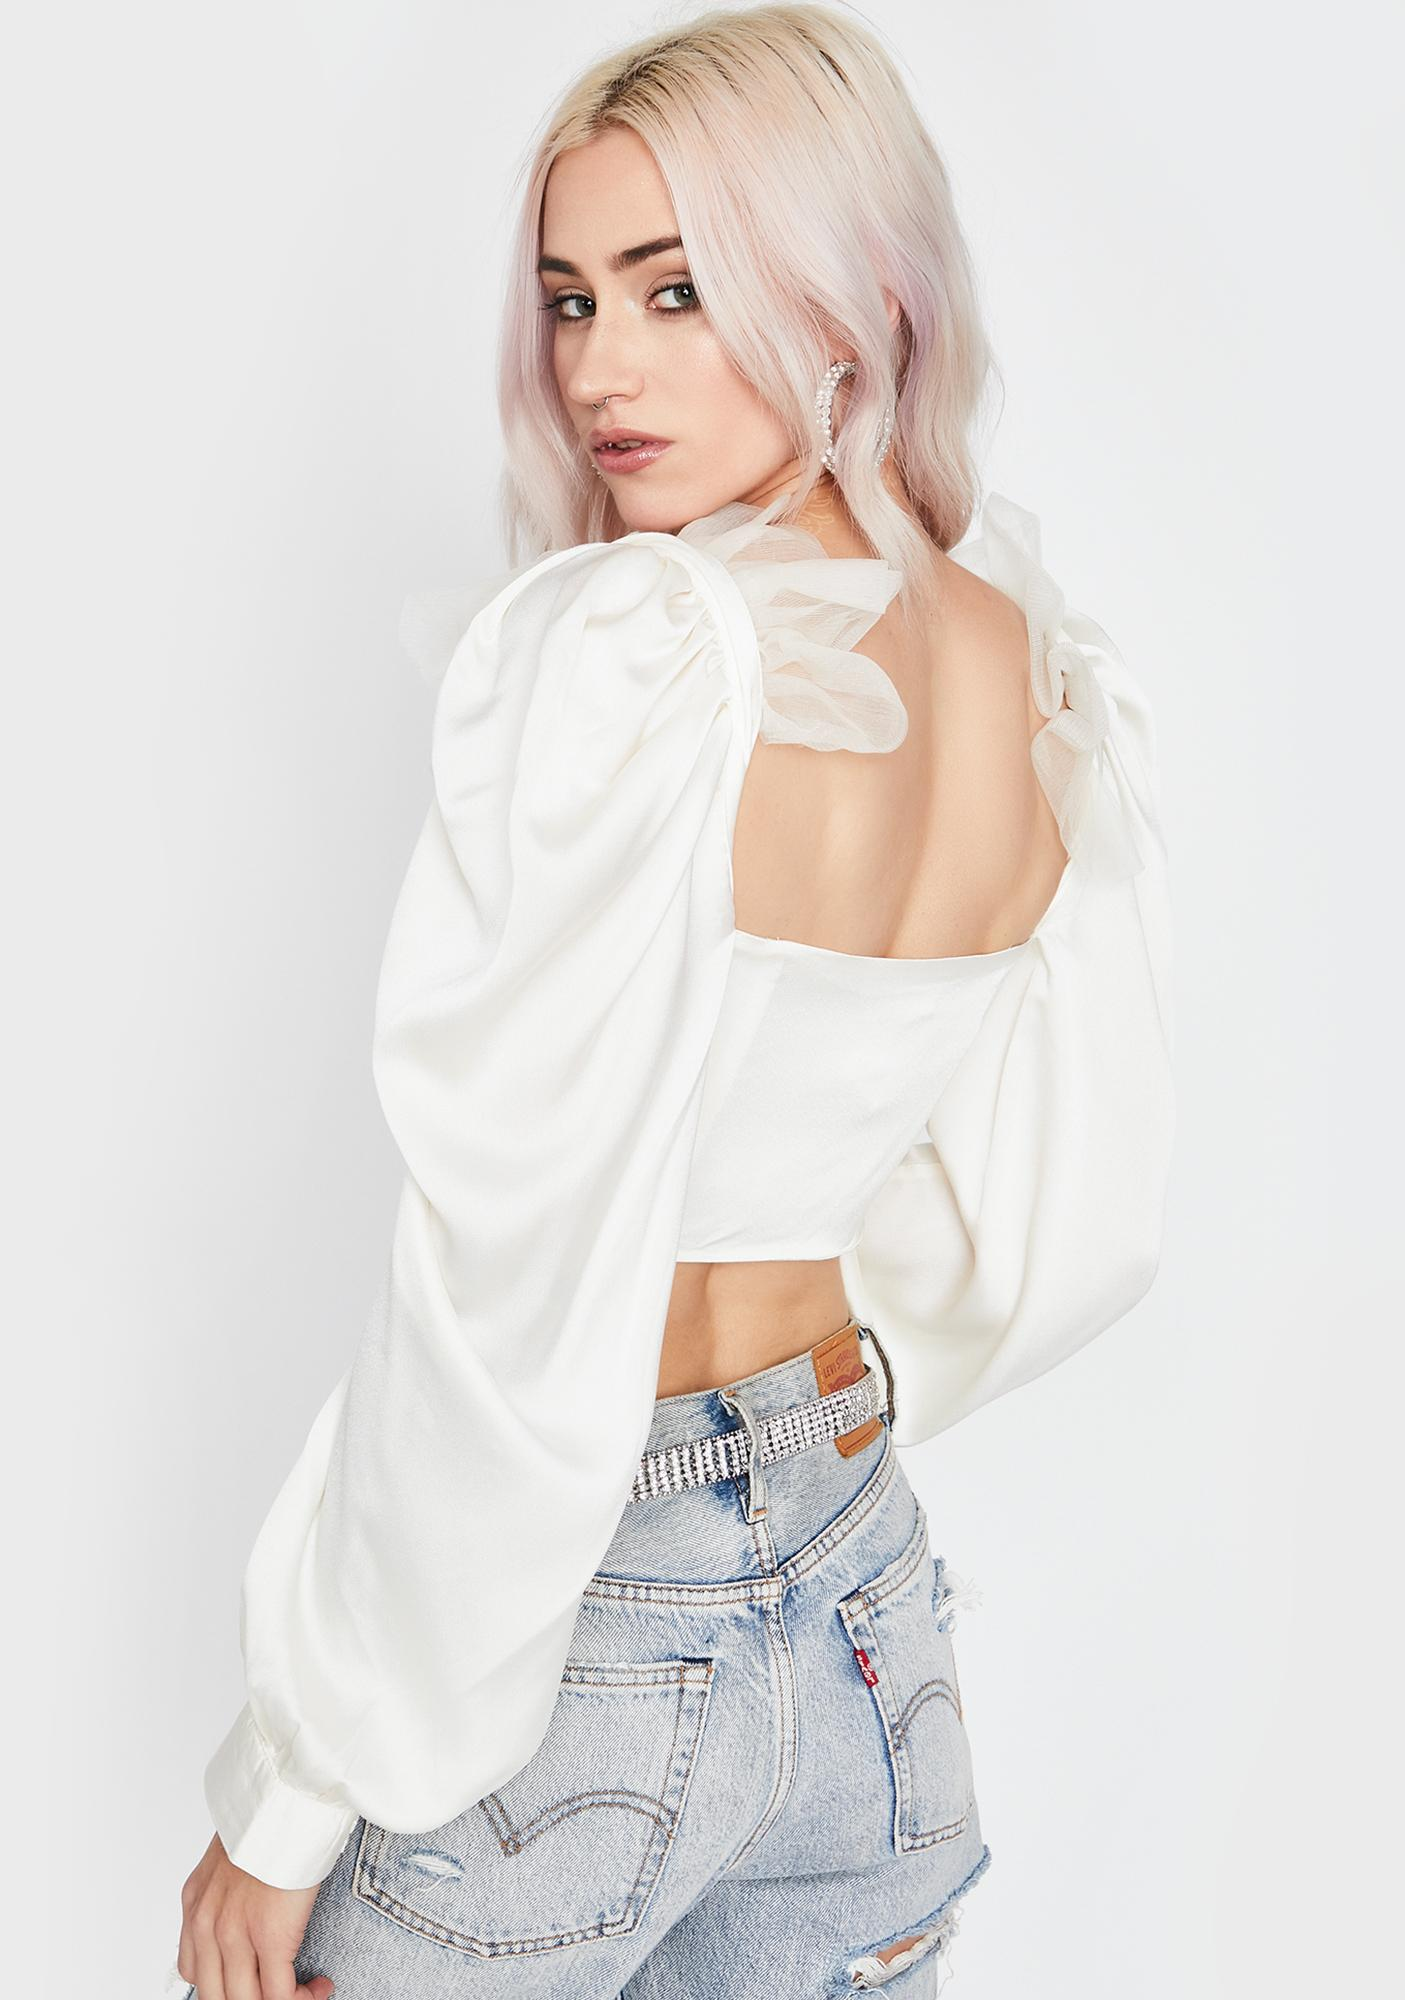 Champagne Fool For You Crop Top